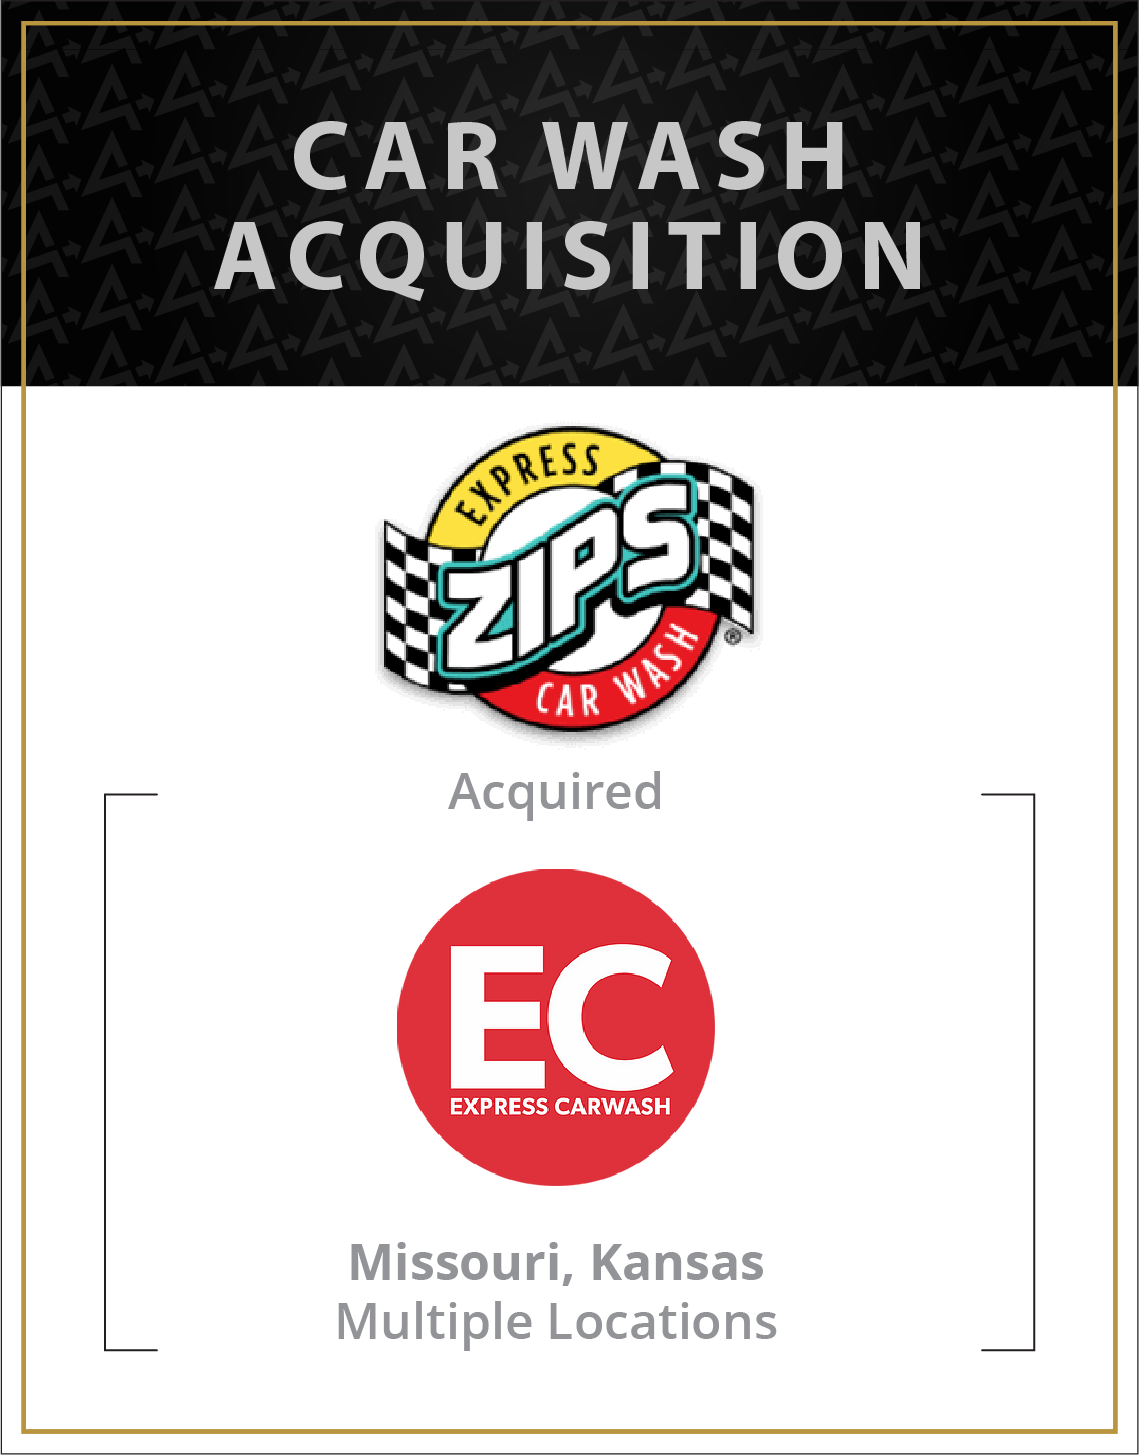 Zips Express Car Wash has acquired Express CarWashes in Missouri and Kansas, Multiple Locations